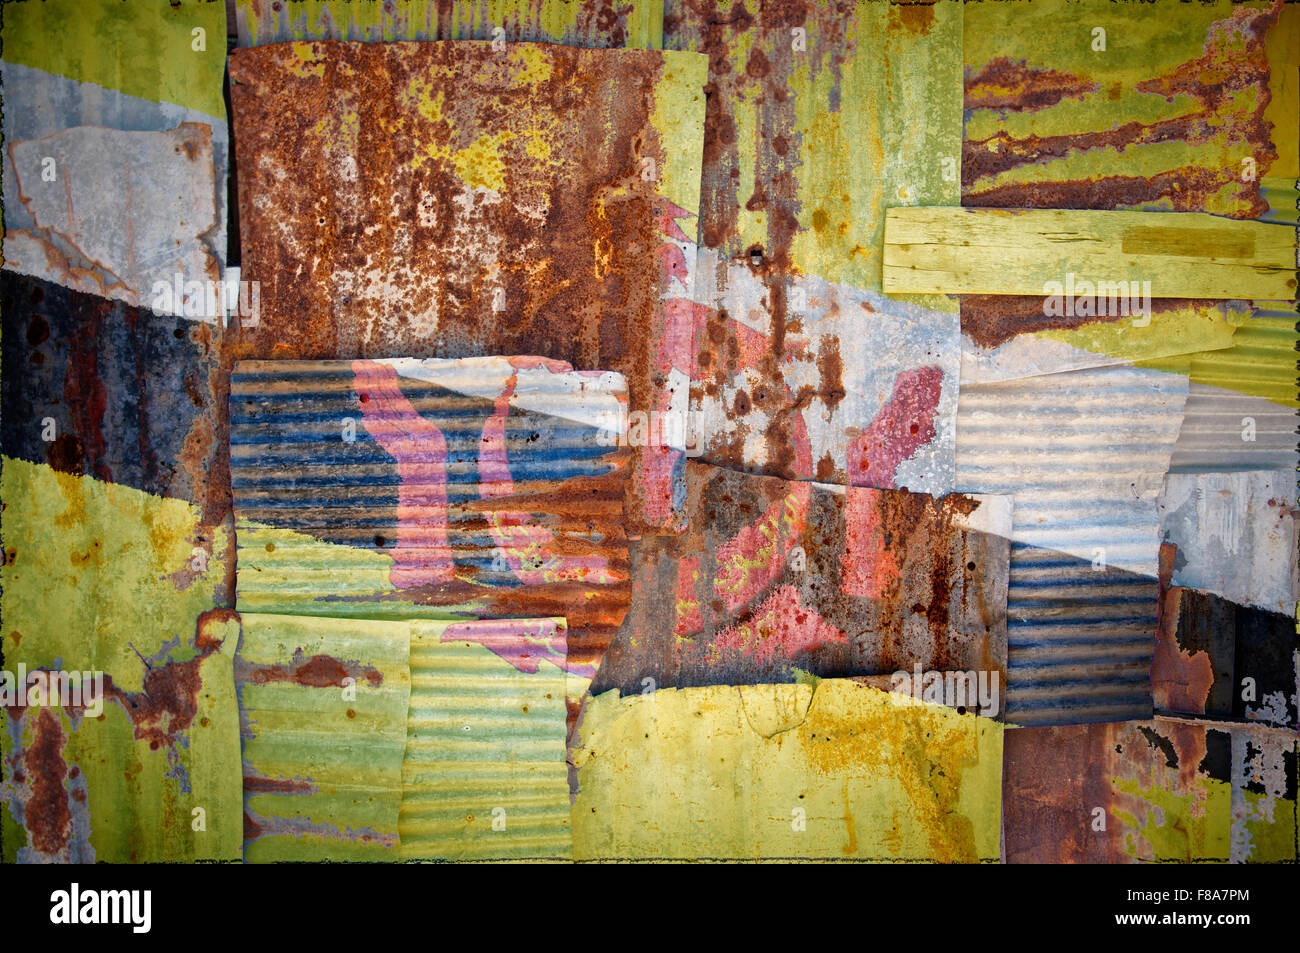 An abstract background image of the flag of Brunei painted on to rusty corrugated iron sheets overlapping to form - Stock Image